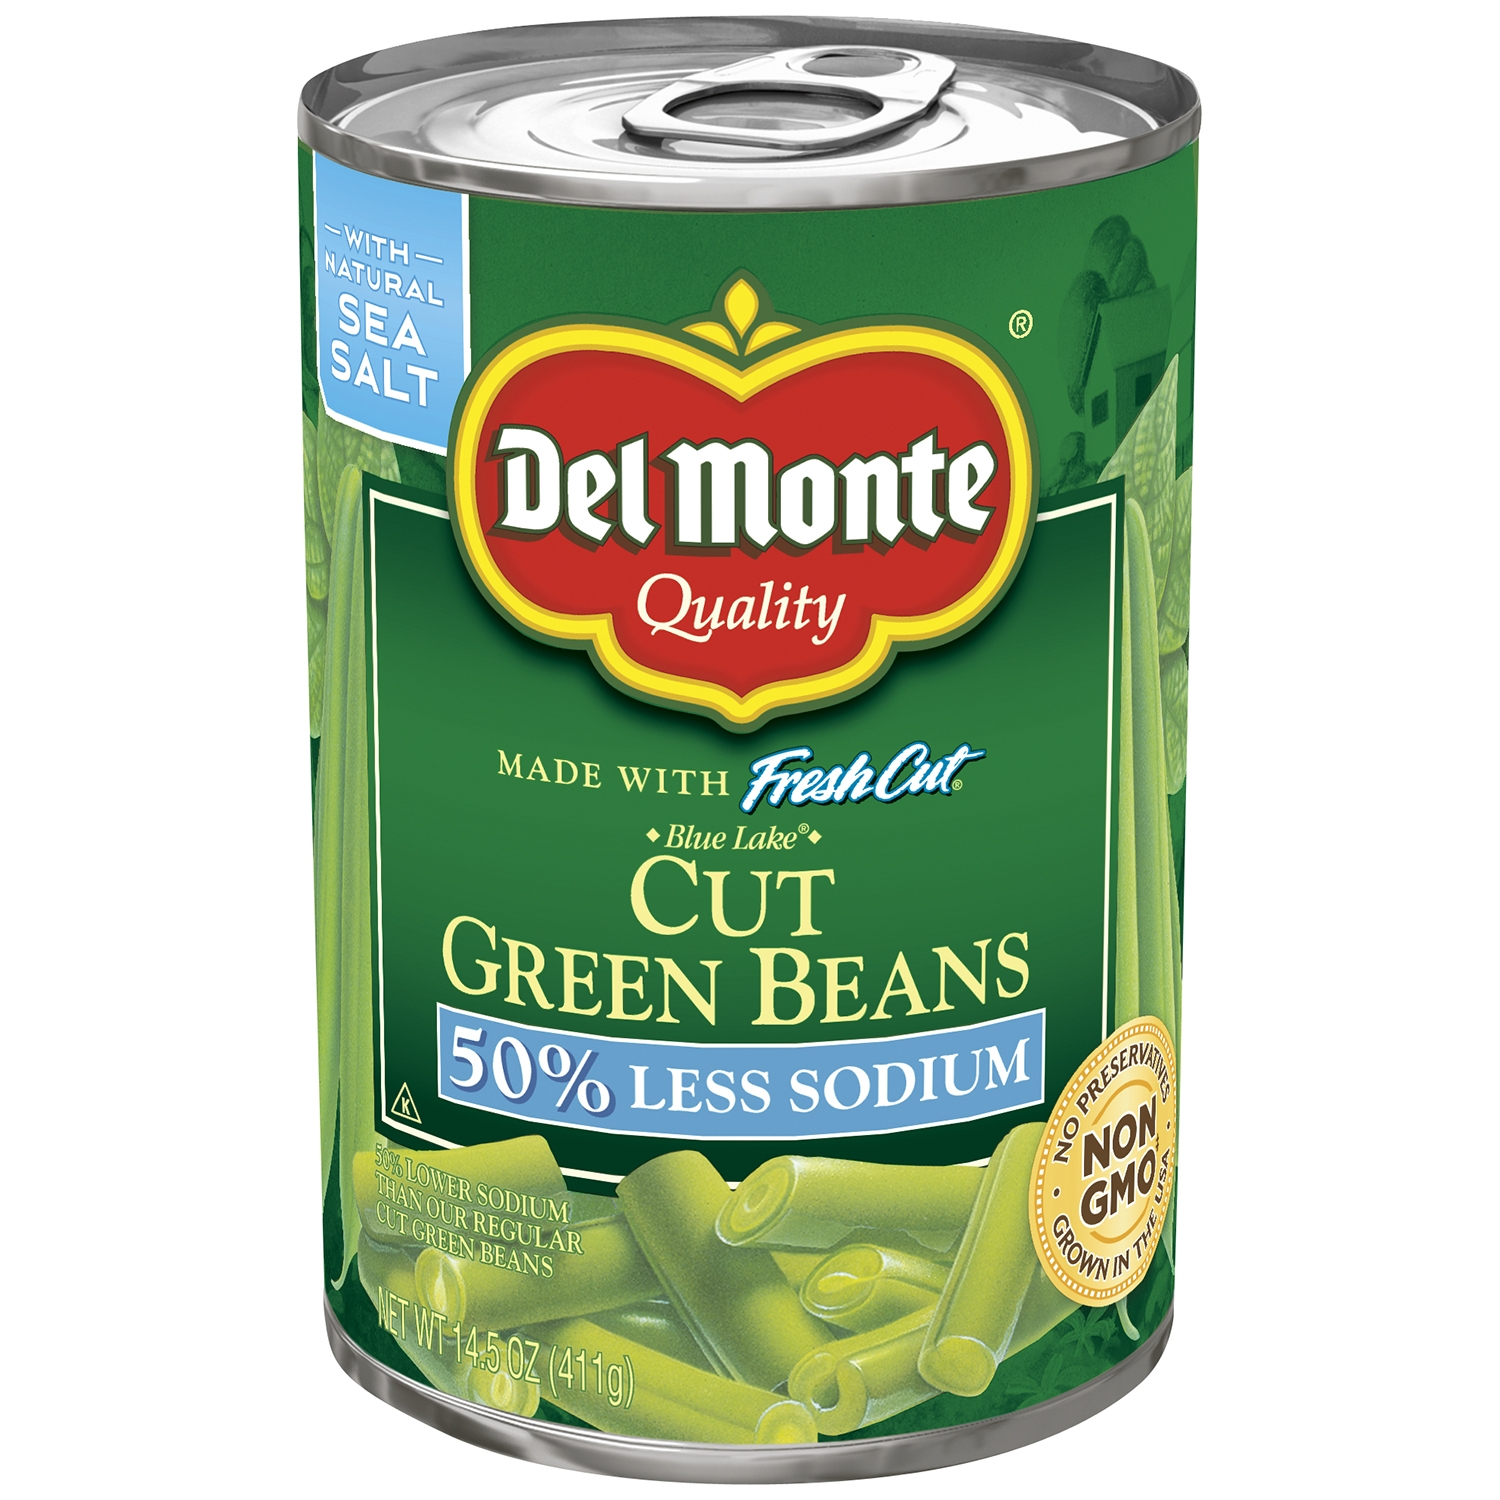 Del Monte Fresh Cut Blue Lake Cut Green Beans, 50% Less Sodium, 14.5 Oz